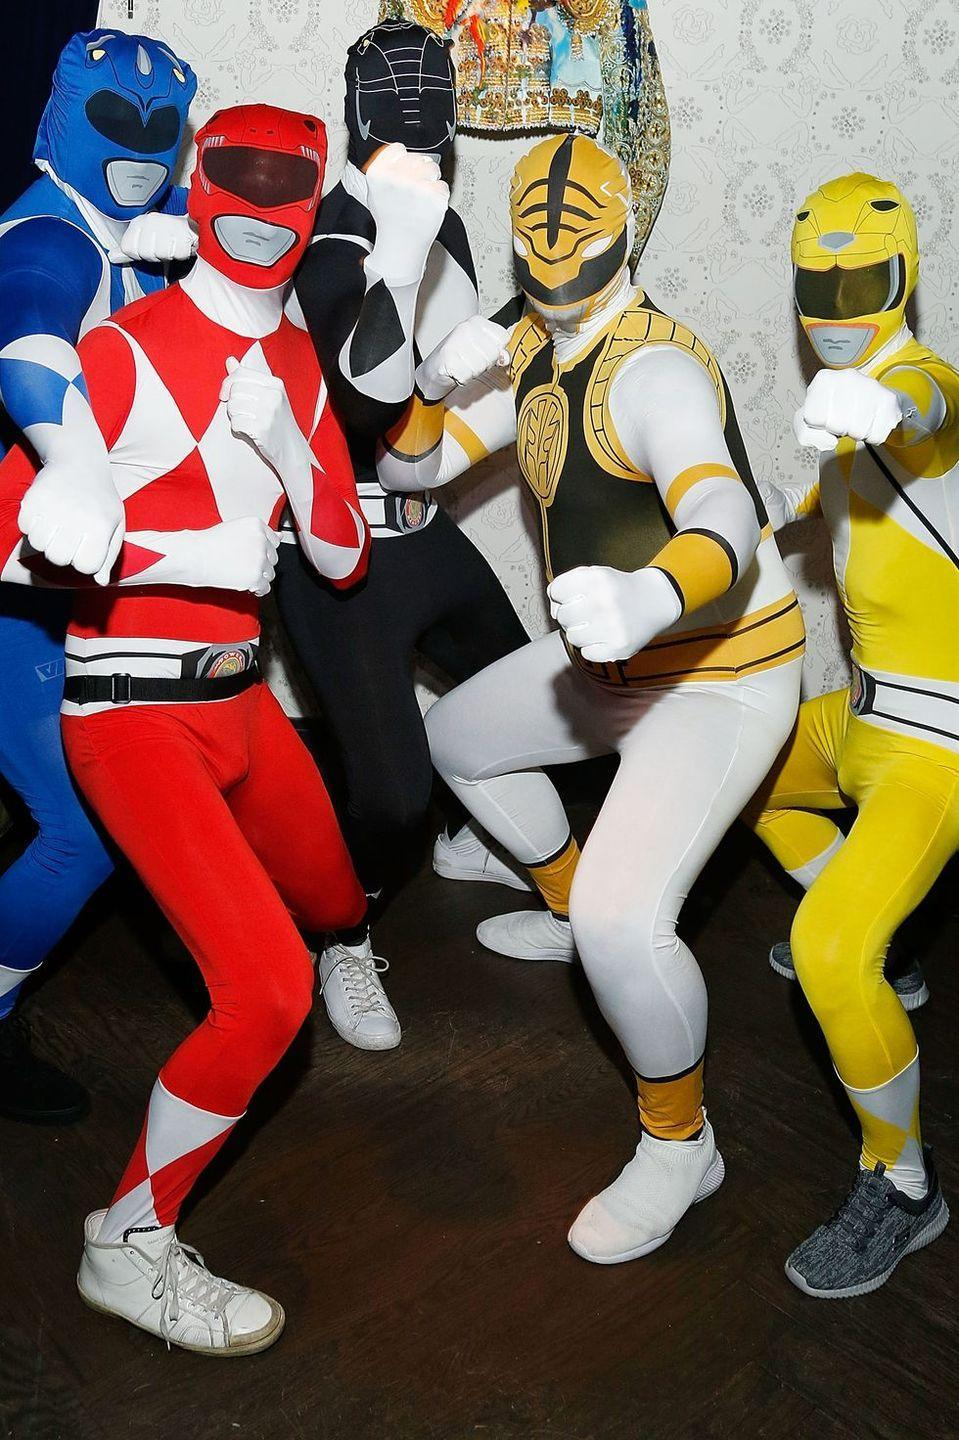 """<p>Whether you do it by yourself or with a group of friends, dressing up as a Power Ranger couldn't be easier (or more fun). </p><p><a class=""""link rapid-noclick-resp"""" href=""""https://www.amazon.com/Official-Ranger-Morphsuit-Costume-Yellow/dp/B00ITSY6W8?tag=syn-yahoo-20&ascsubtag=%5Bartid%7C10070.g.2683%5Bsrc%7Cyahoo-us"""" rel=""""nofollow noopener"""" target=""""_blank"""" data-ylk=""""slk:SHOP MORPHSUIT"""">SHOP MORPHSUIT</a></p>"""